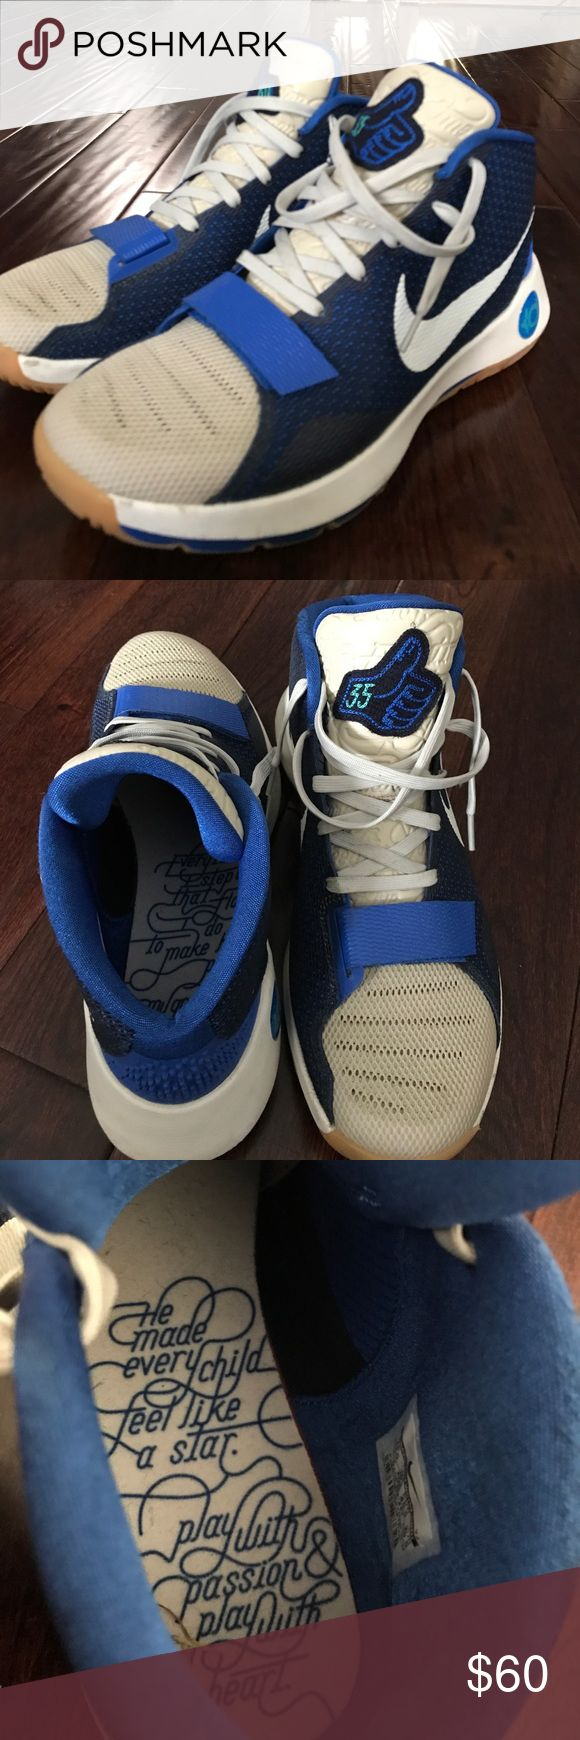 Spotted while shopping on Poshmark: Kevin Durrant Nike Basketball Sneakers! #poshmark #fashion #shopping #style #Nike #Other